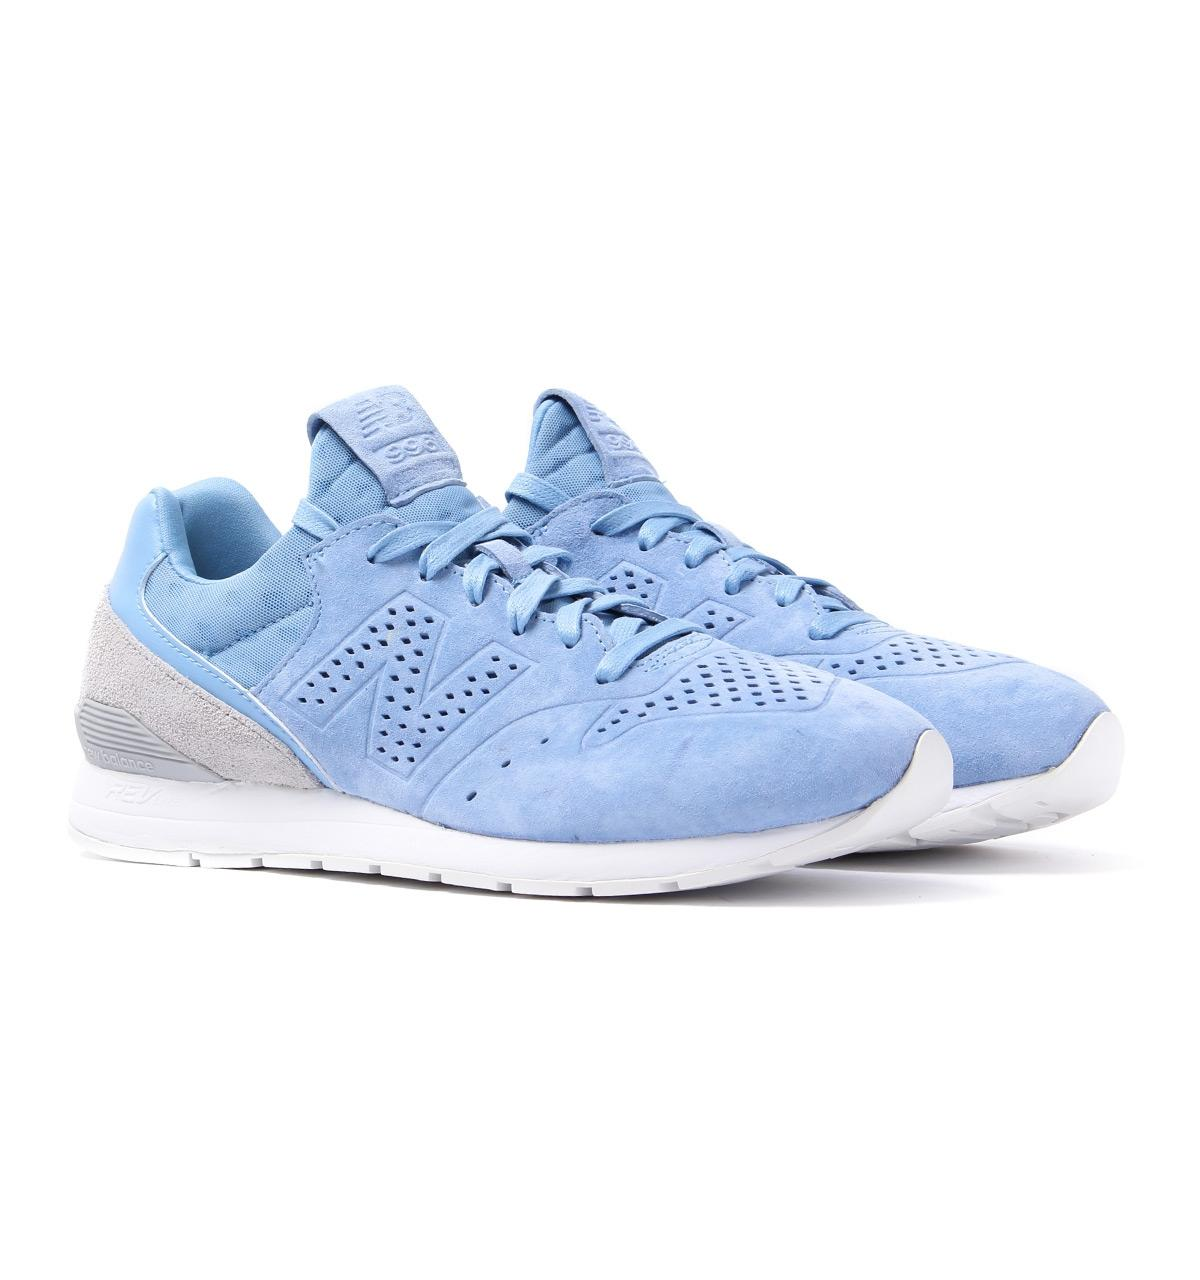 reputable site c6f18 fdbfc coupon code for new balance reengineered 996 trainers 283d6 ...